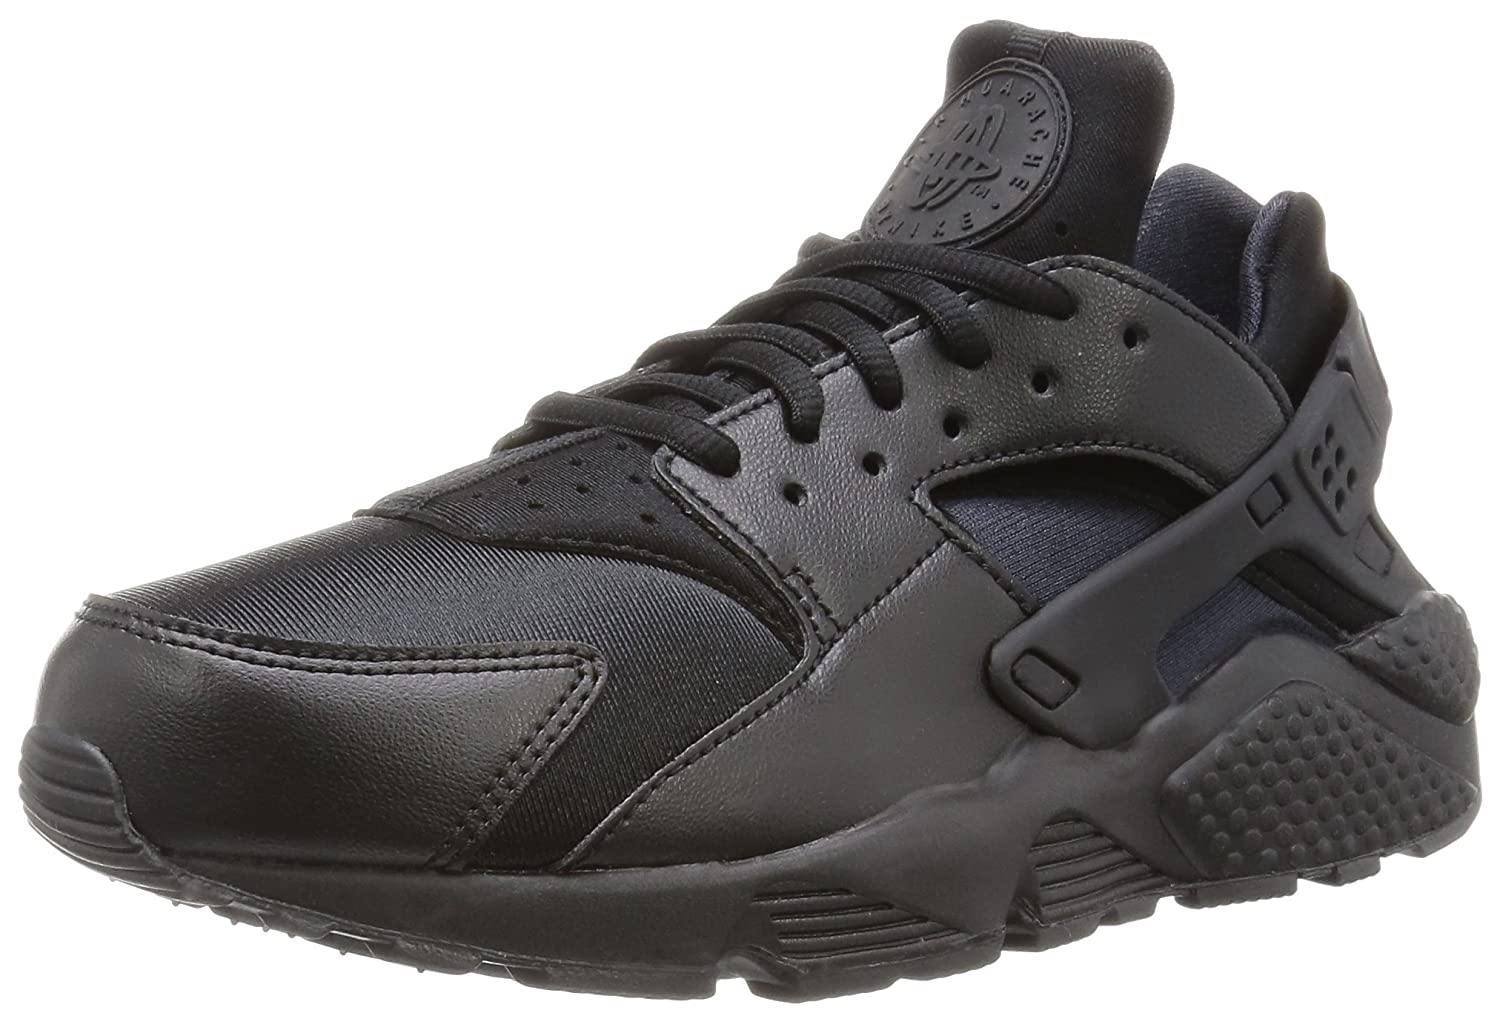 NIKE Women's Huarache Run SE Running Shoe B01A4ABC84 9.5 B(M) US|Black/Black